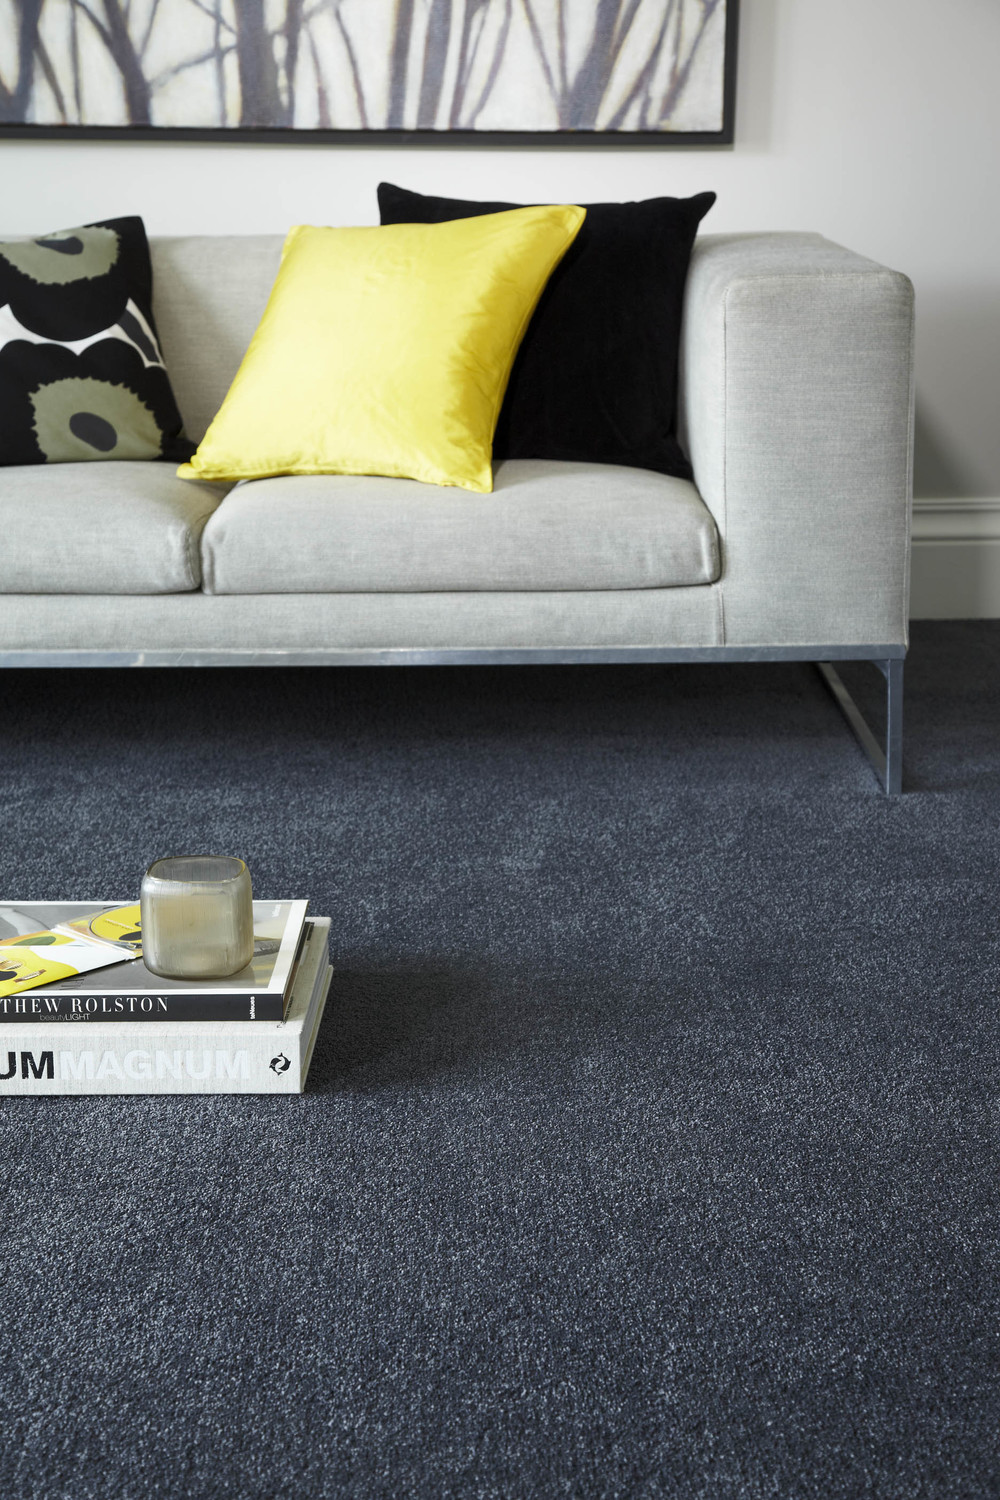 DISCOVER OUR RANGE OF CARPETS Get a taste of some of the designs and suppliers available in-store. Need advice? Just call.